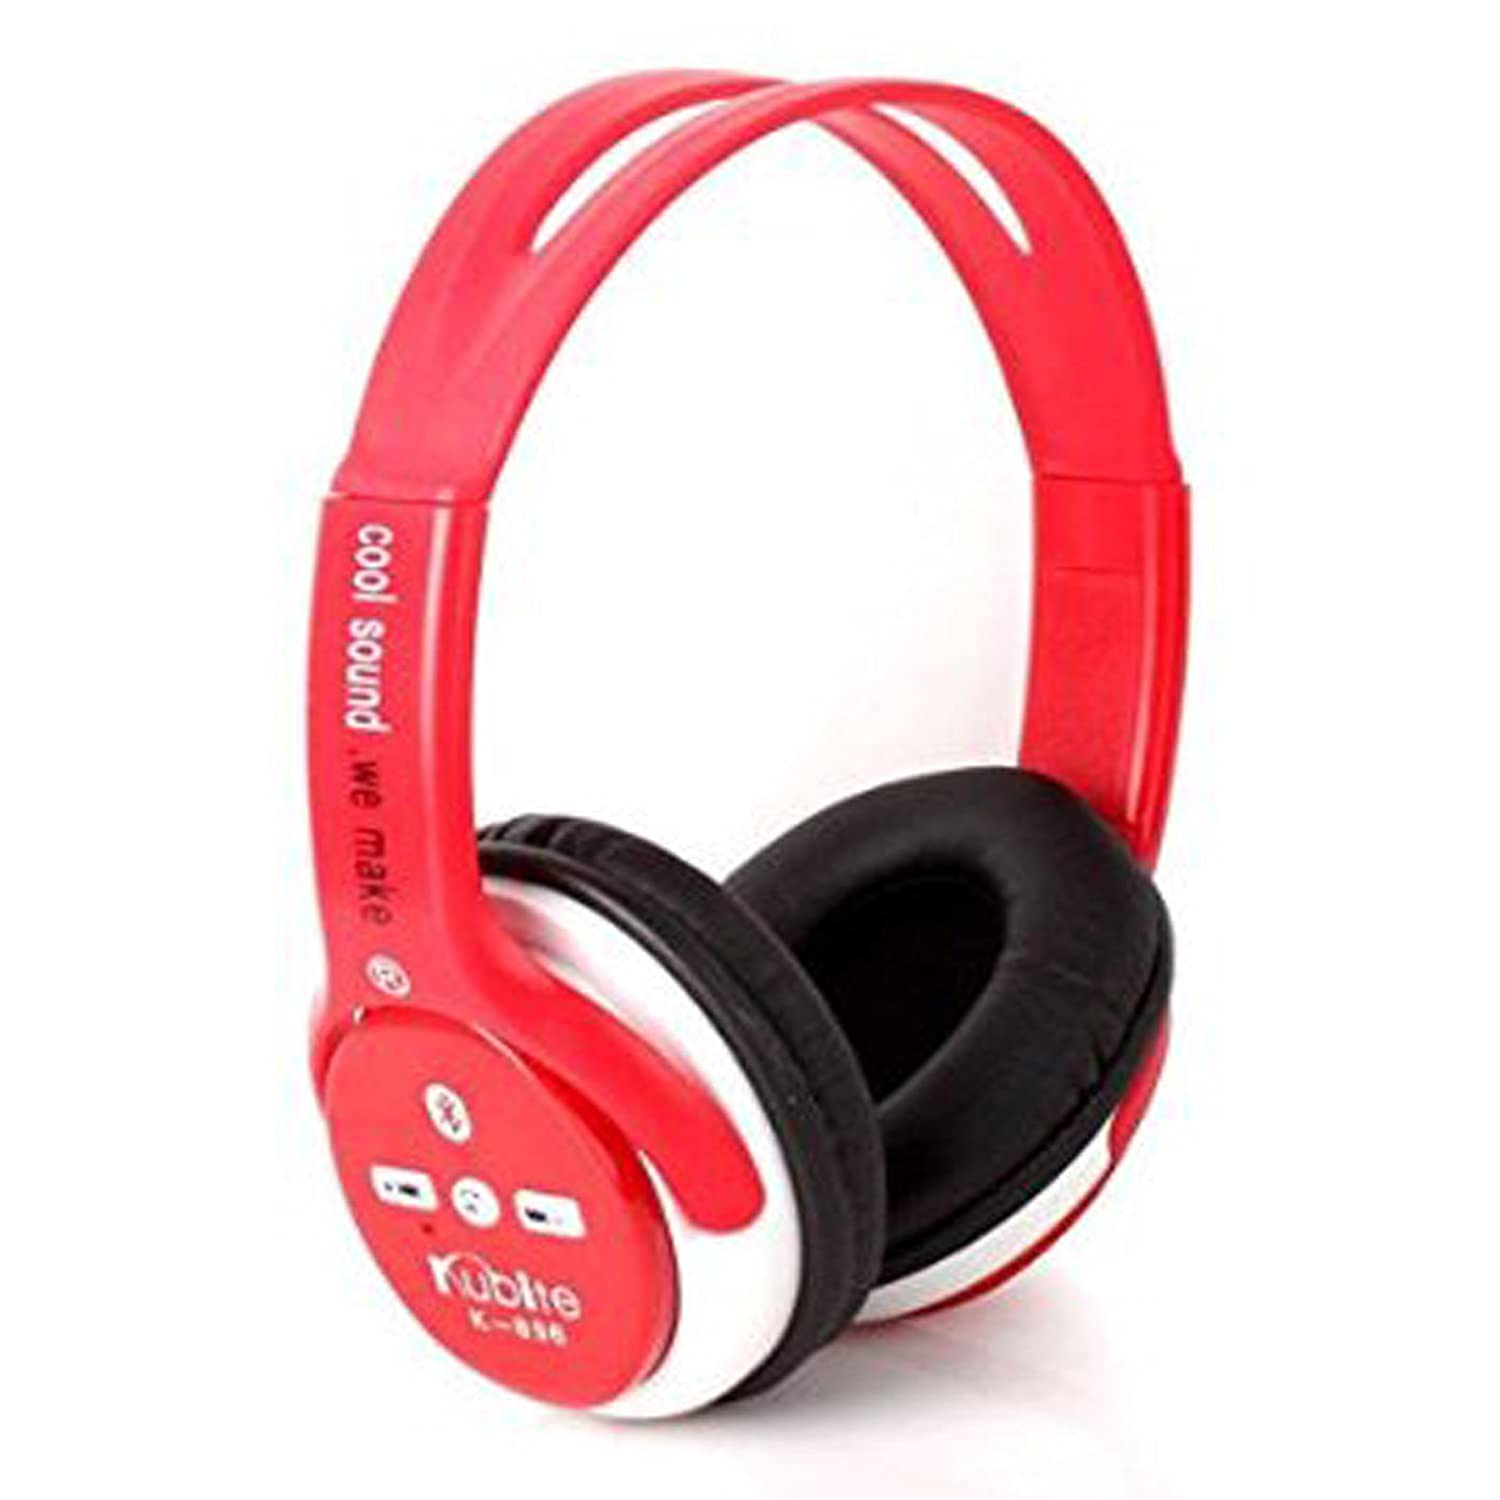 Wireless Bluetooth Headset Earphone Handsfree Call Over Ear Headphones Noise Cancelling Earpieces Bass Stereo Headphone with Mic Compatible with Smart Cell Phones iPad PC Red